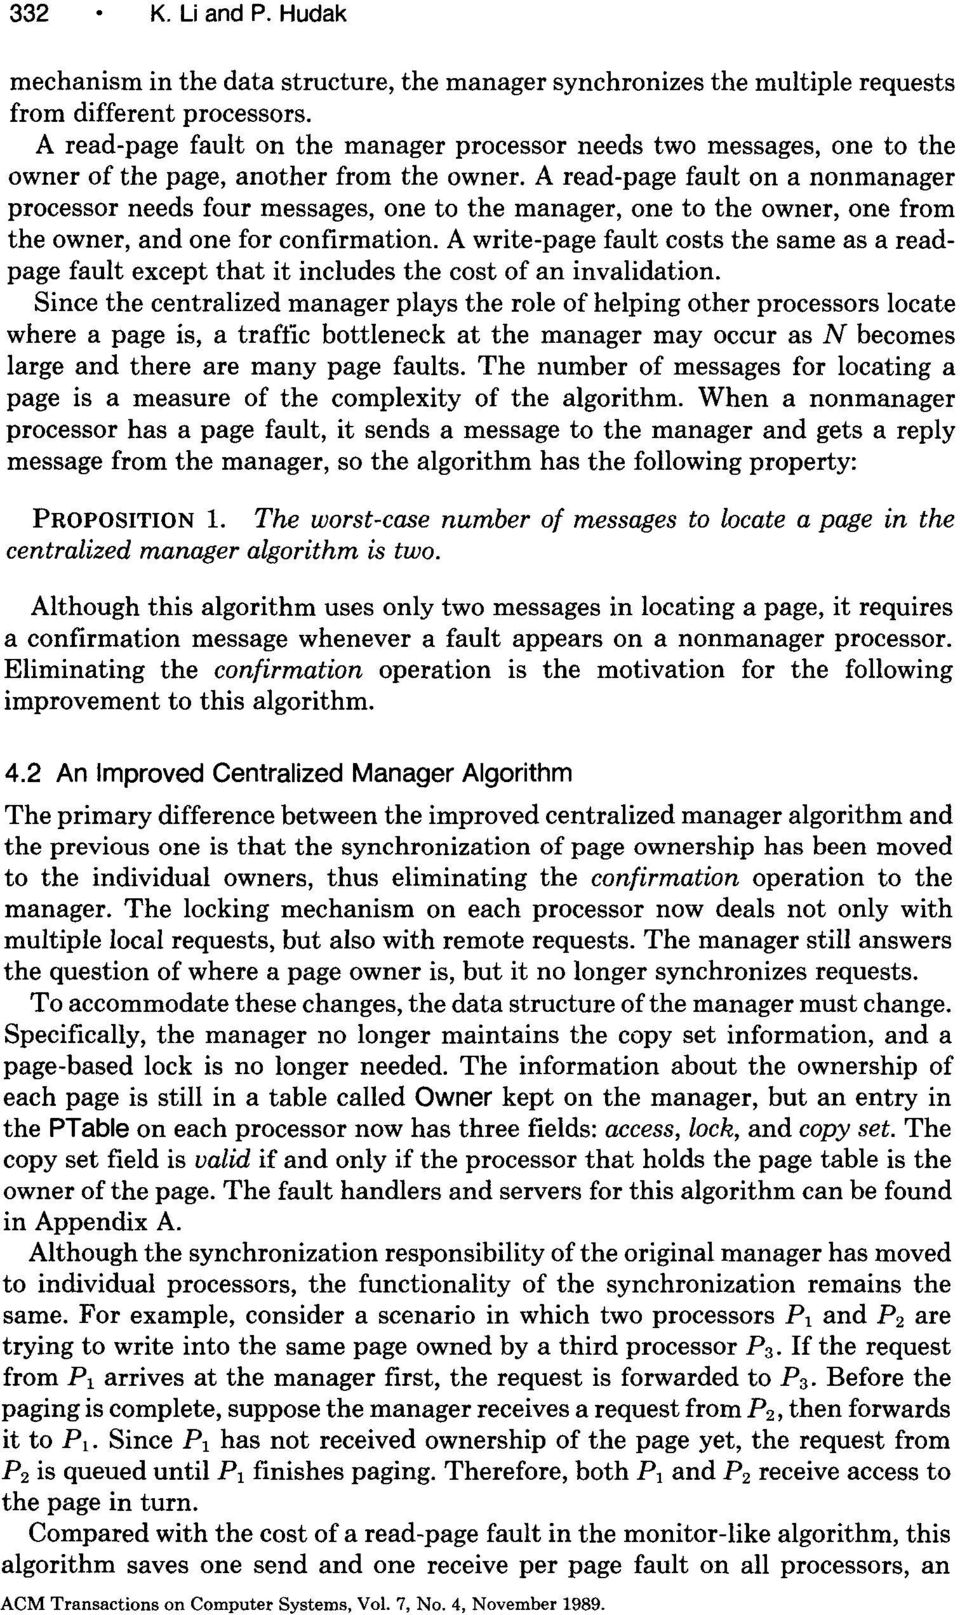 A read-page fault on a nonmanager processor needs four messages, one to the manager, one to the owner, one from the owner, and one for confirmation.